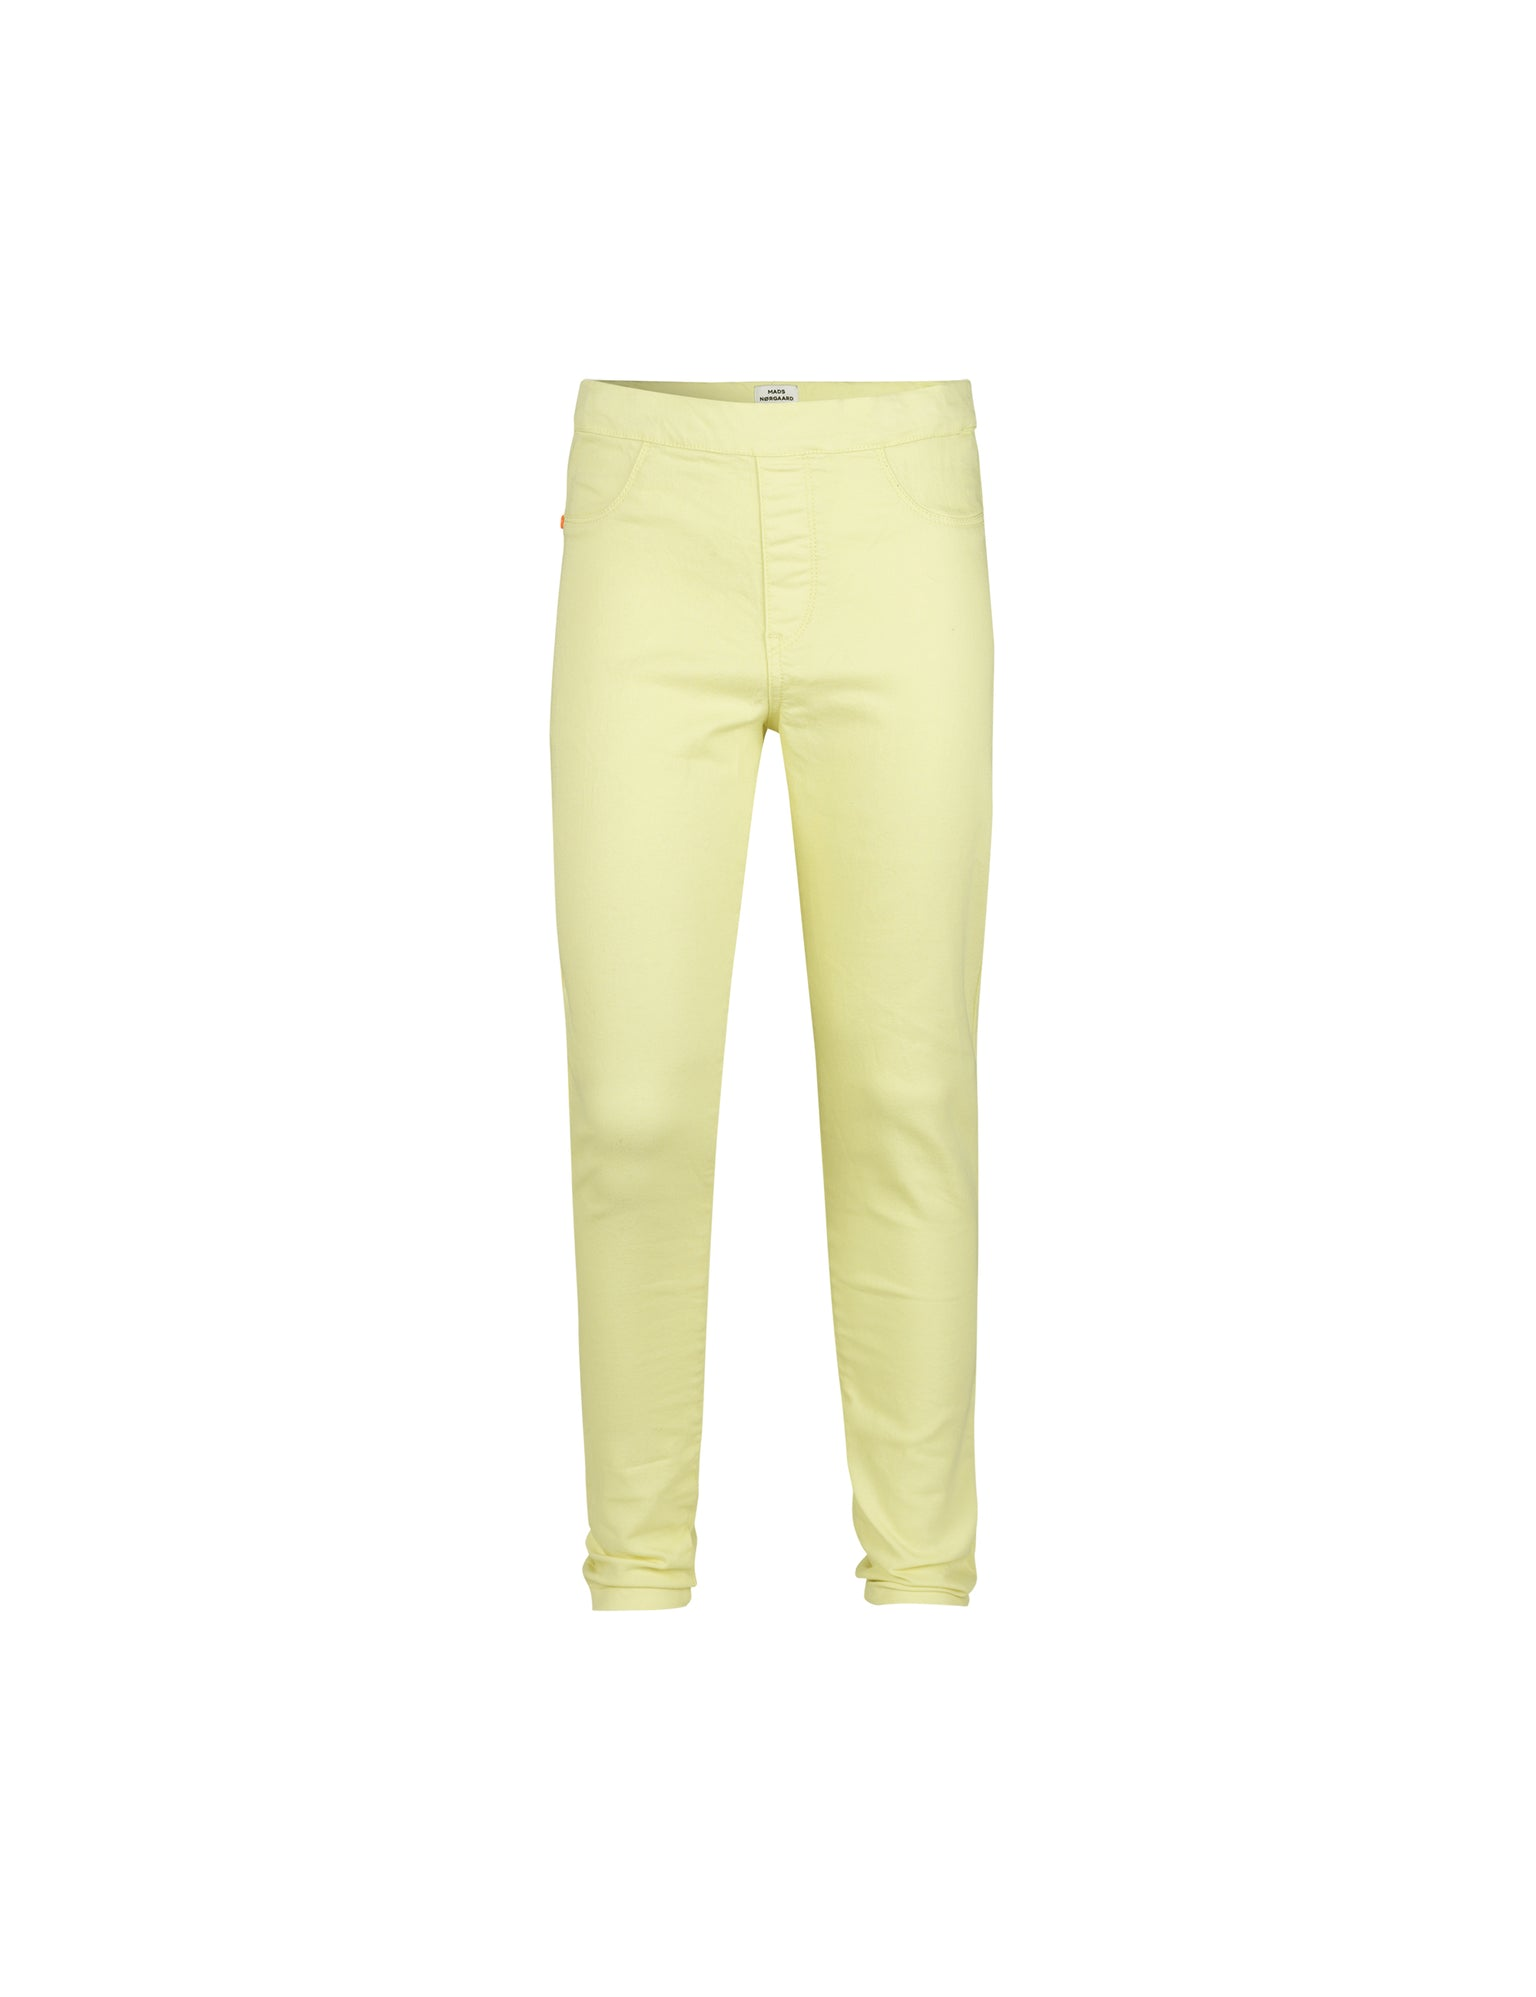 Coloured Stretch Pinsa, Soft Yellow